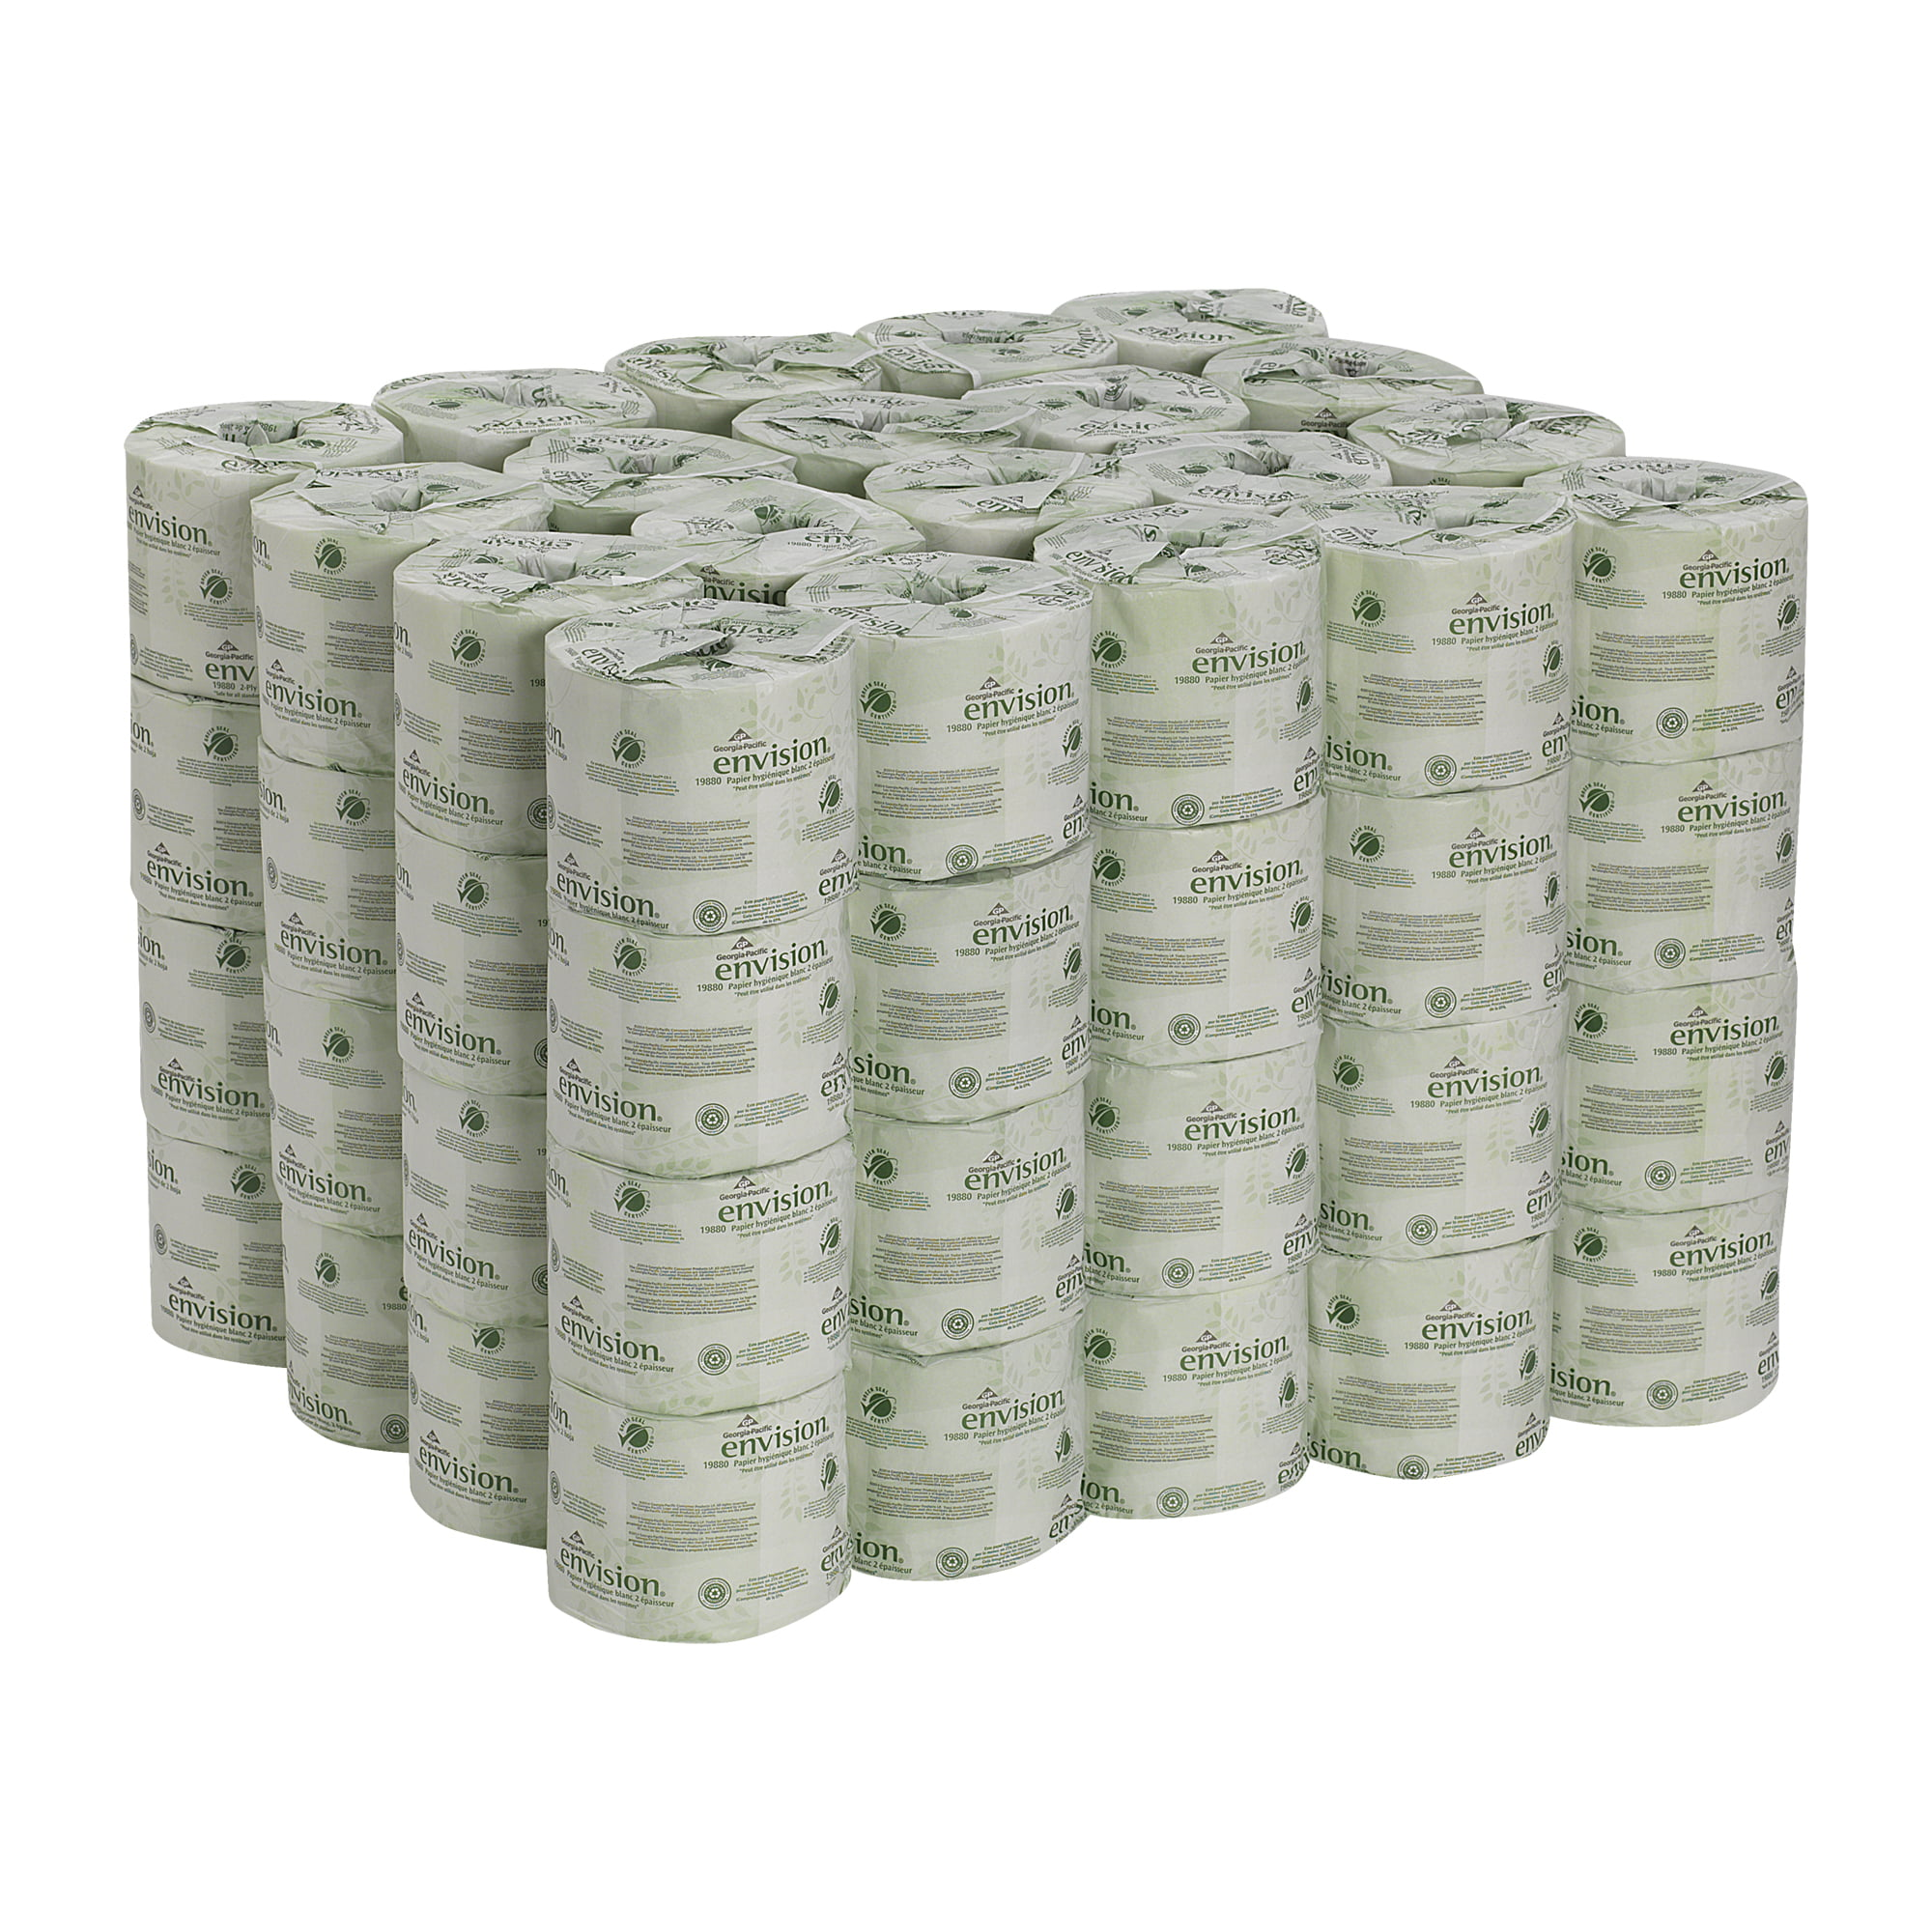 400 Per Roll Green Heritage Toilet Paper Case of 96 Rolls 2Ply 4 x 3 Sheets Eco-Friendly